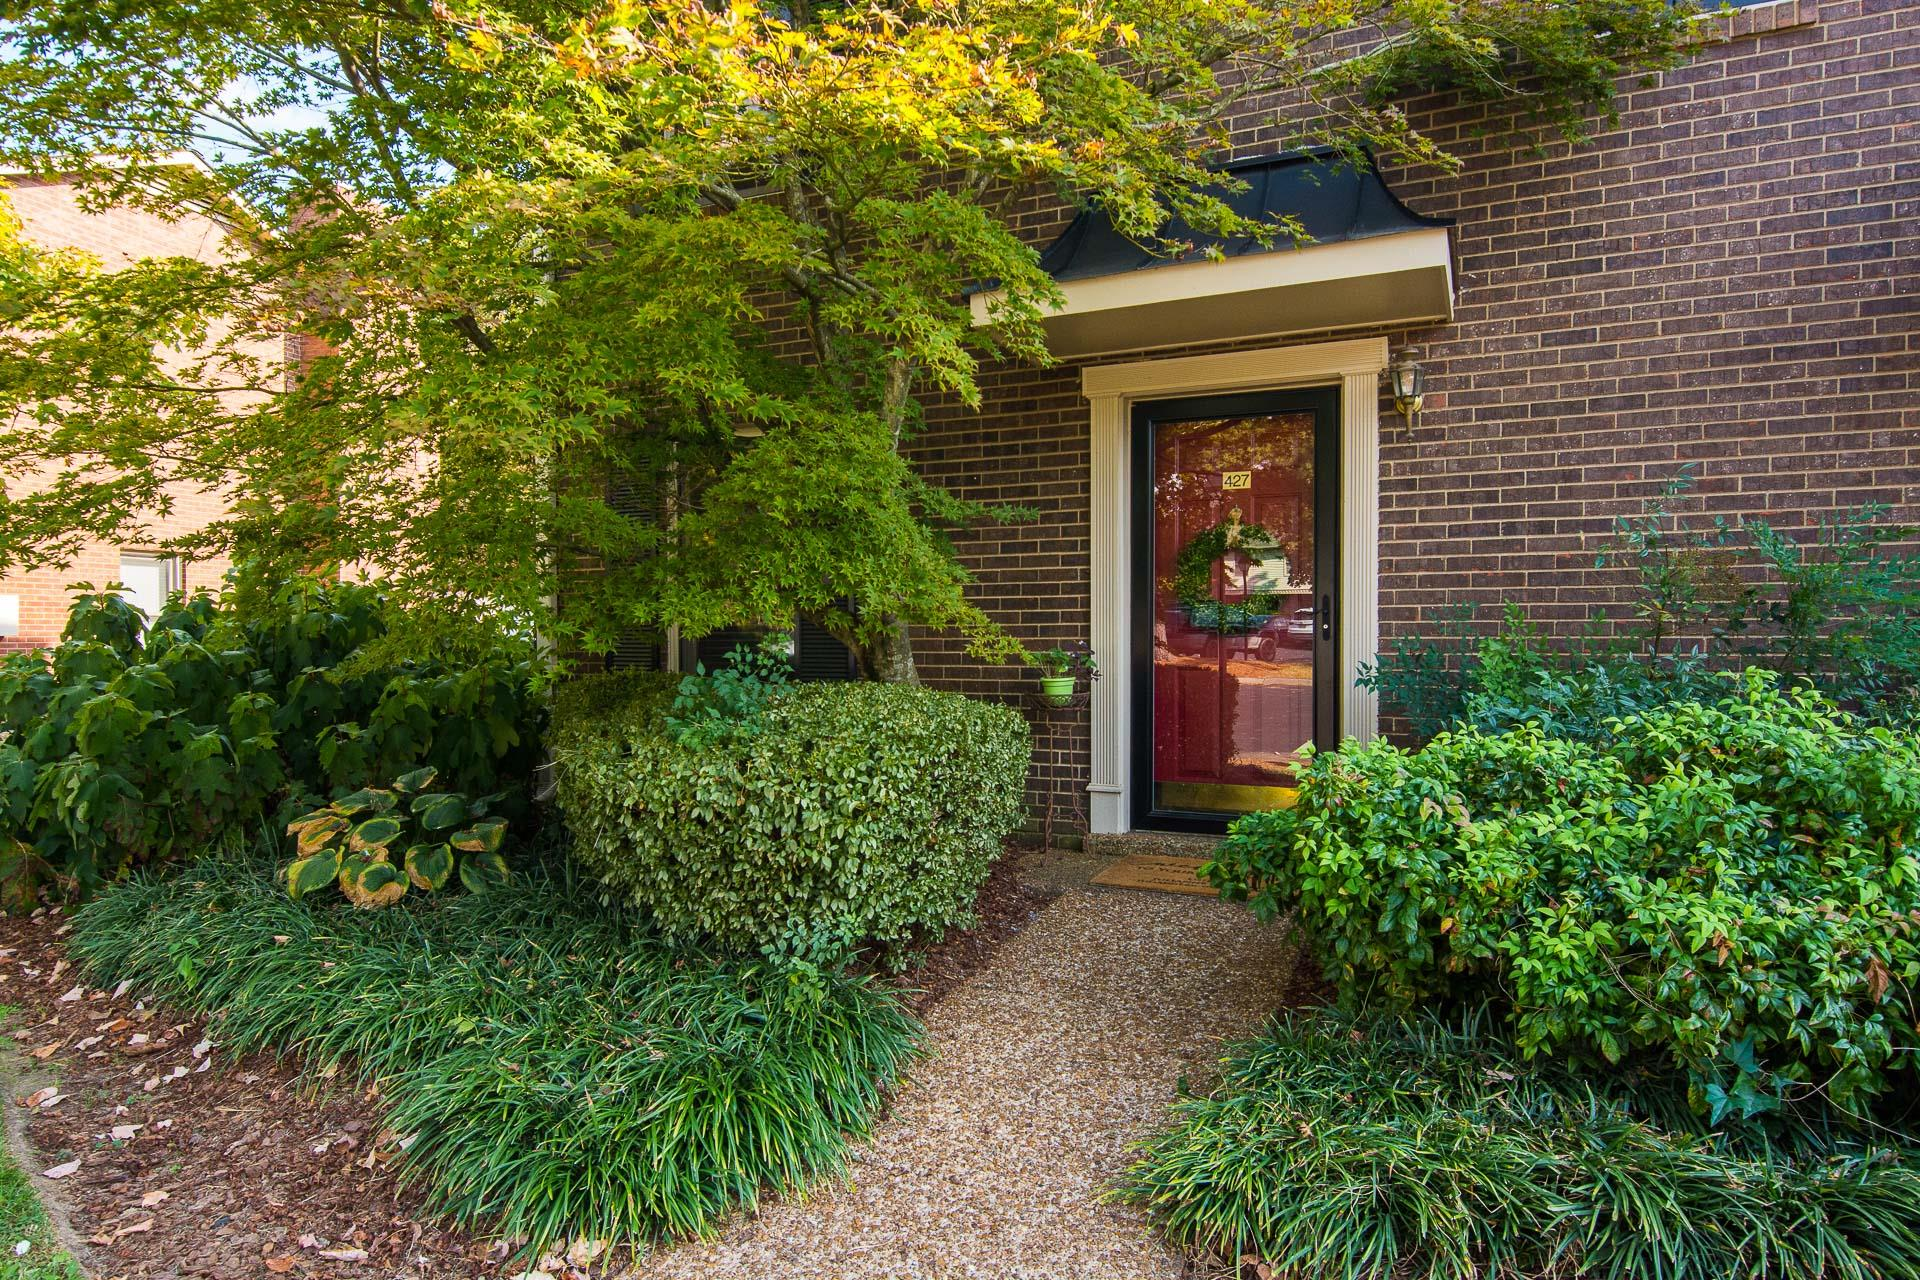 427 Westfield Dr, Bellevue in Davidson County County, TN 37221 Home for Sale